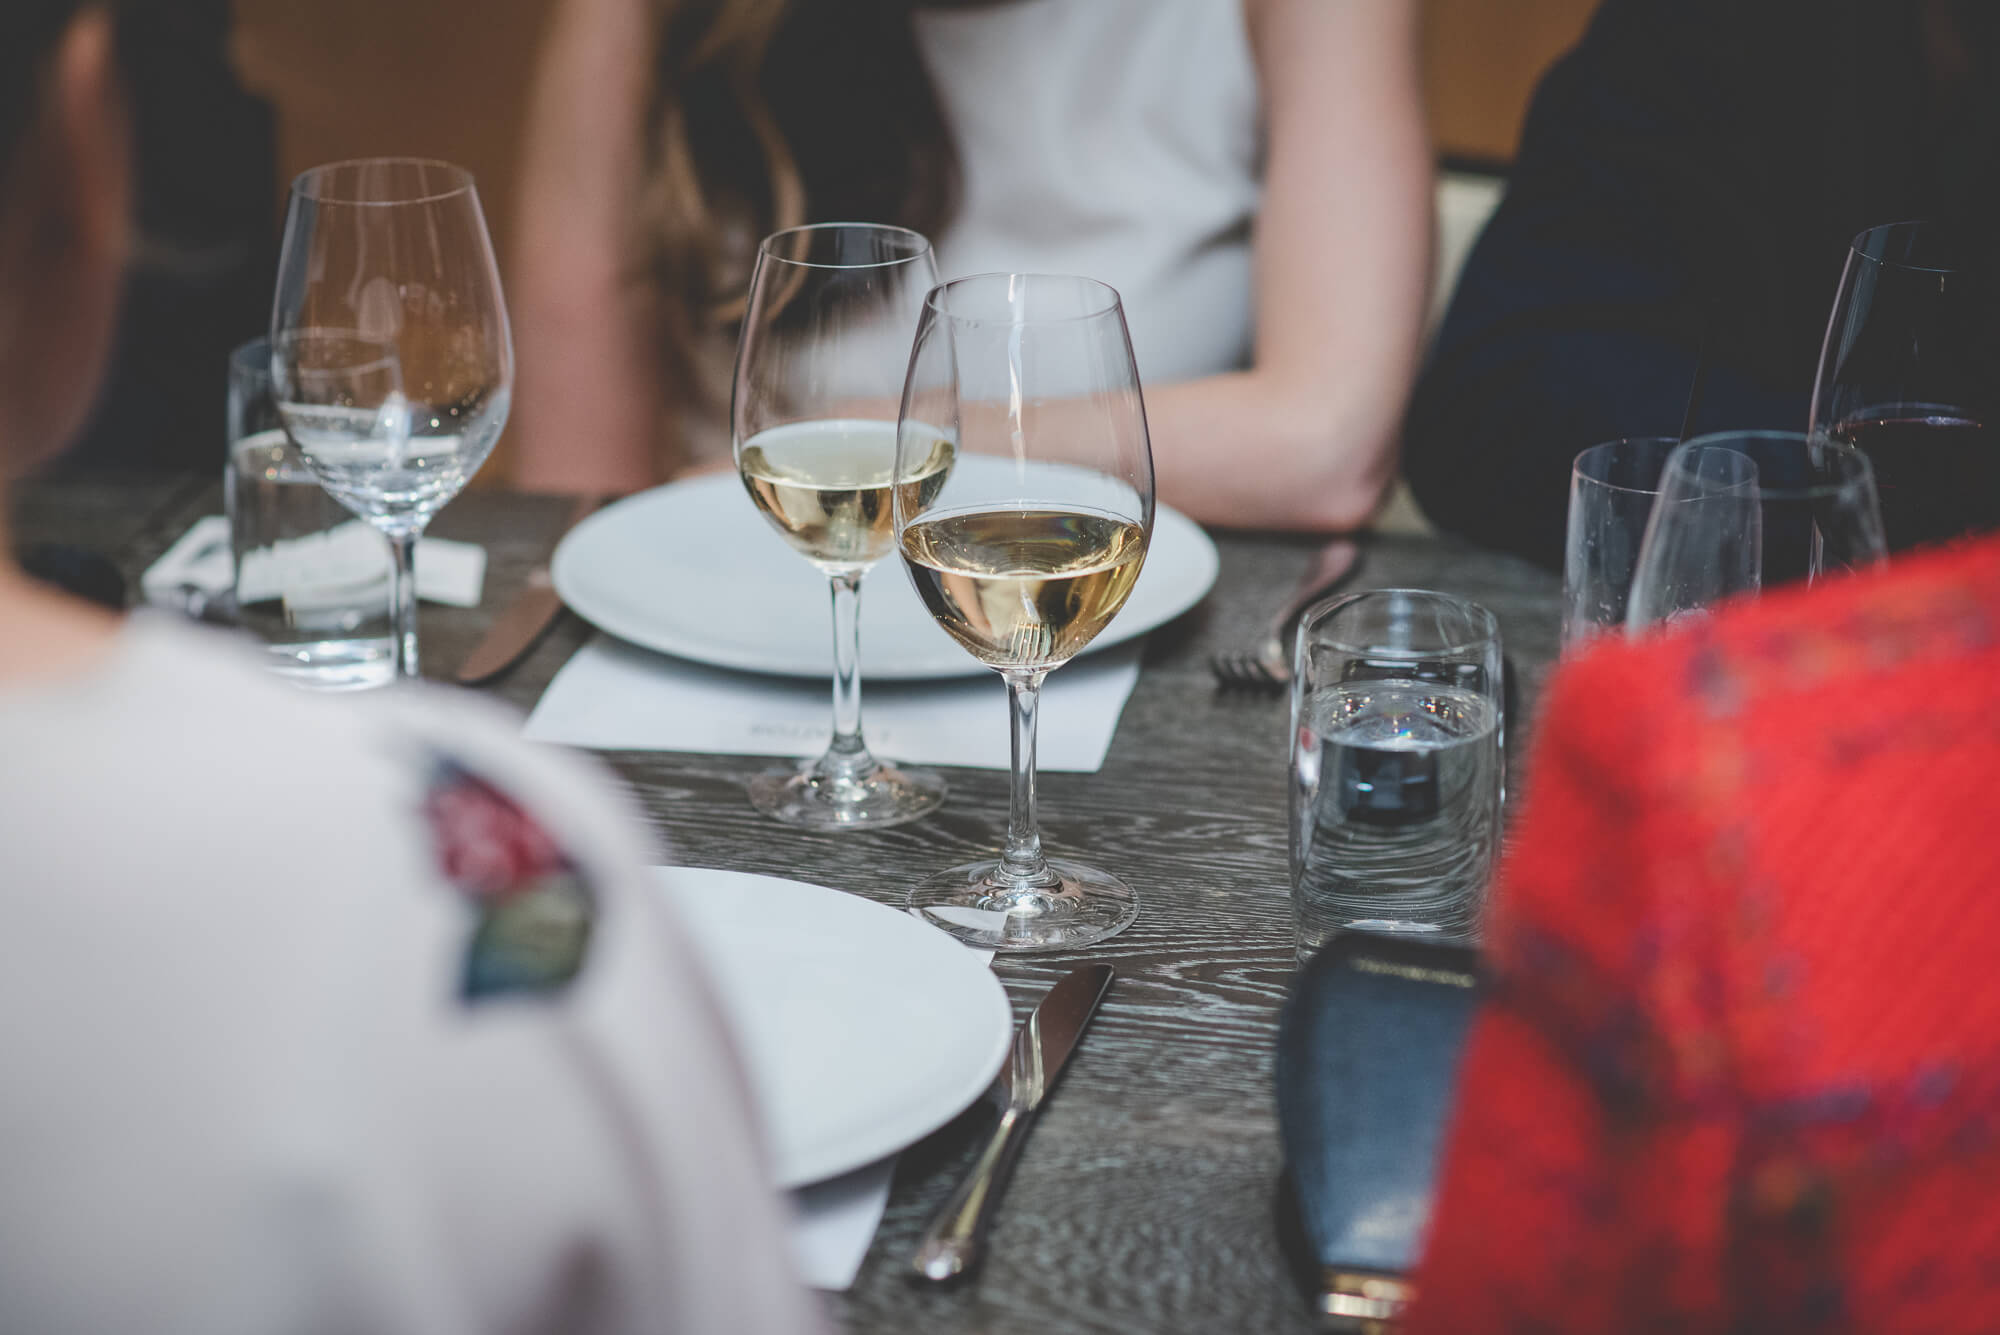 5 reasons to have an open bar wedding | glasses of wine sitting on table at L'Abattoir wedding reception